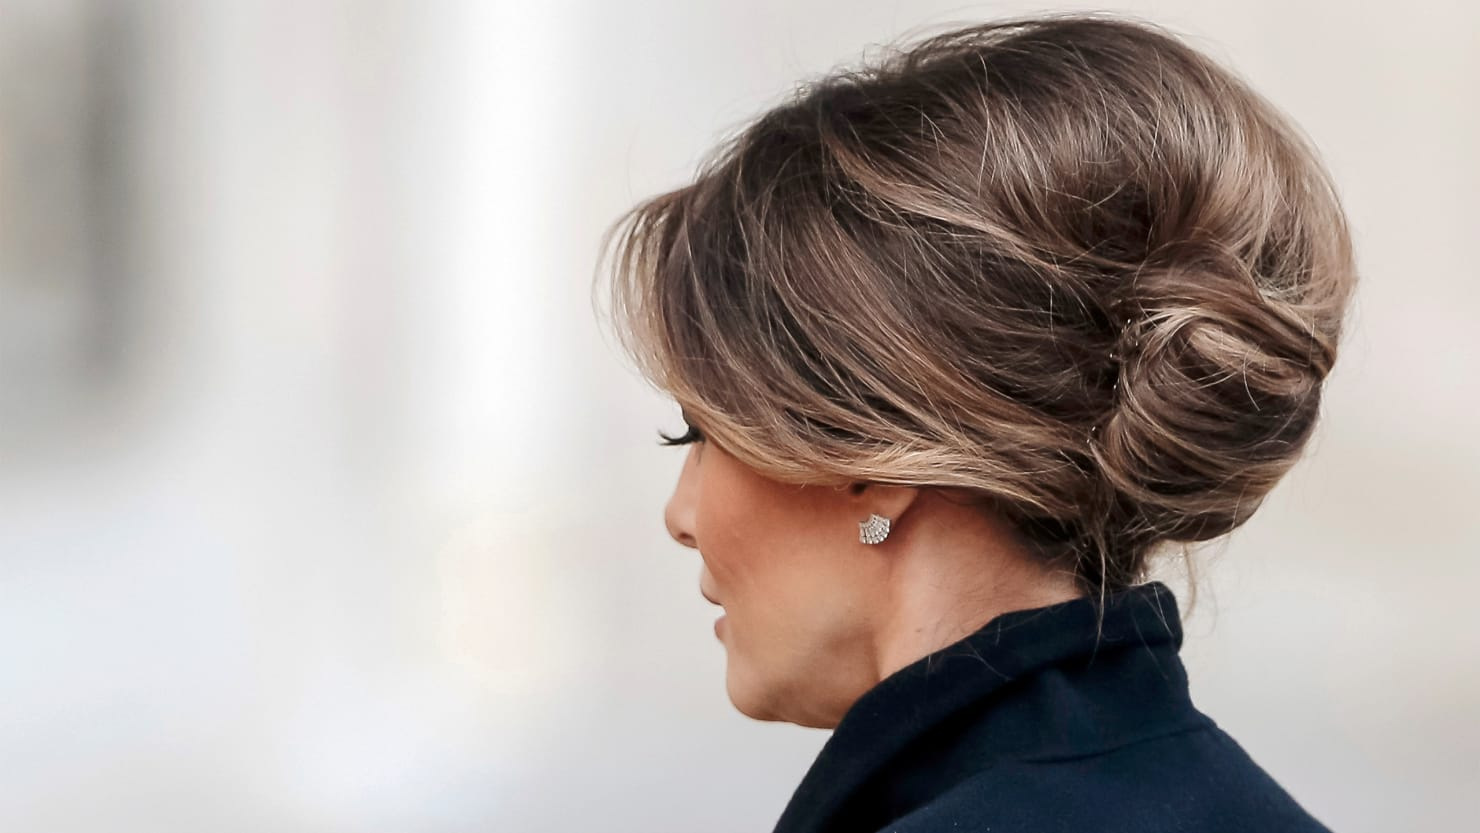 So Just What Was That Melania Power Play About?